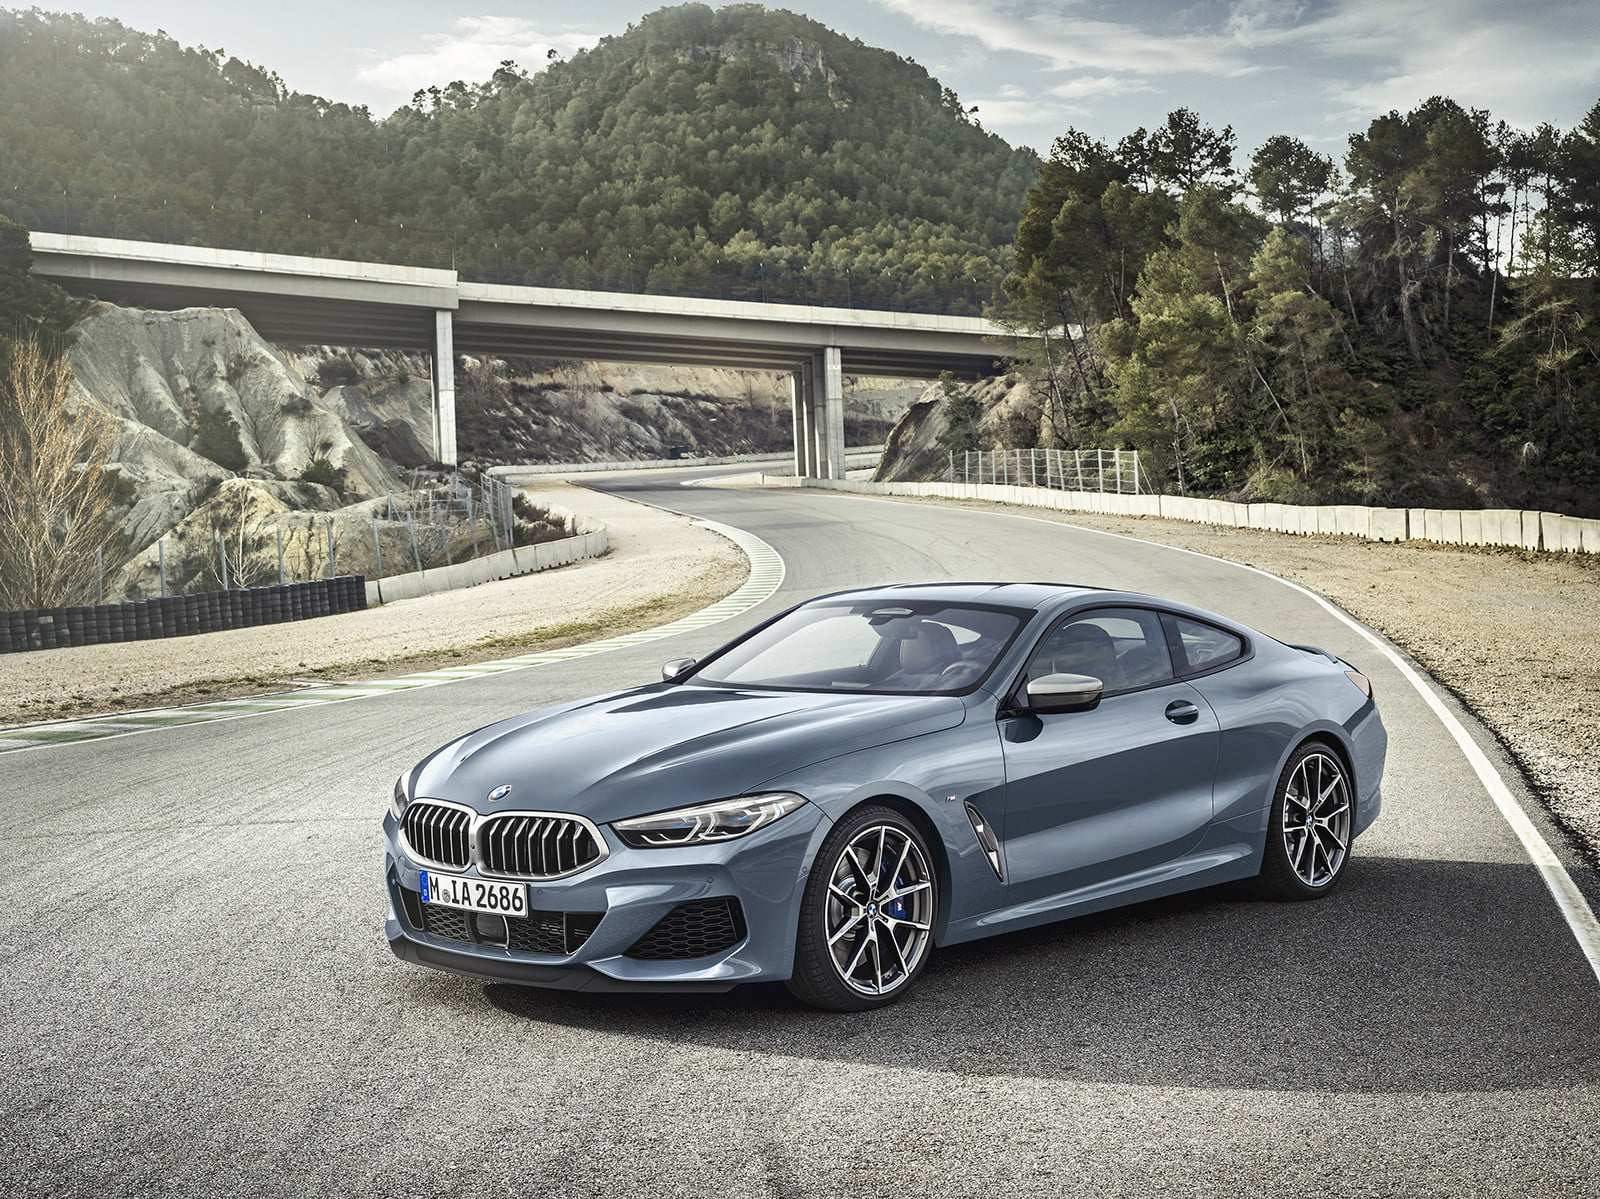 91 All New 2020 Bmw 850 Performance with 2020 Bmw 850